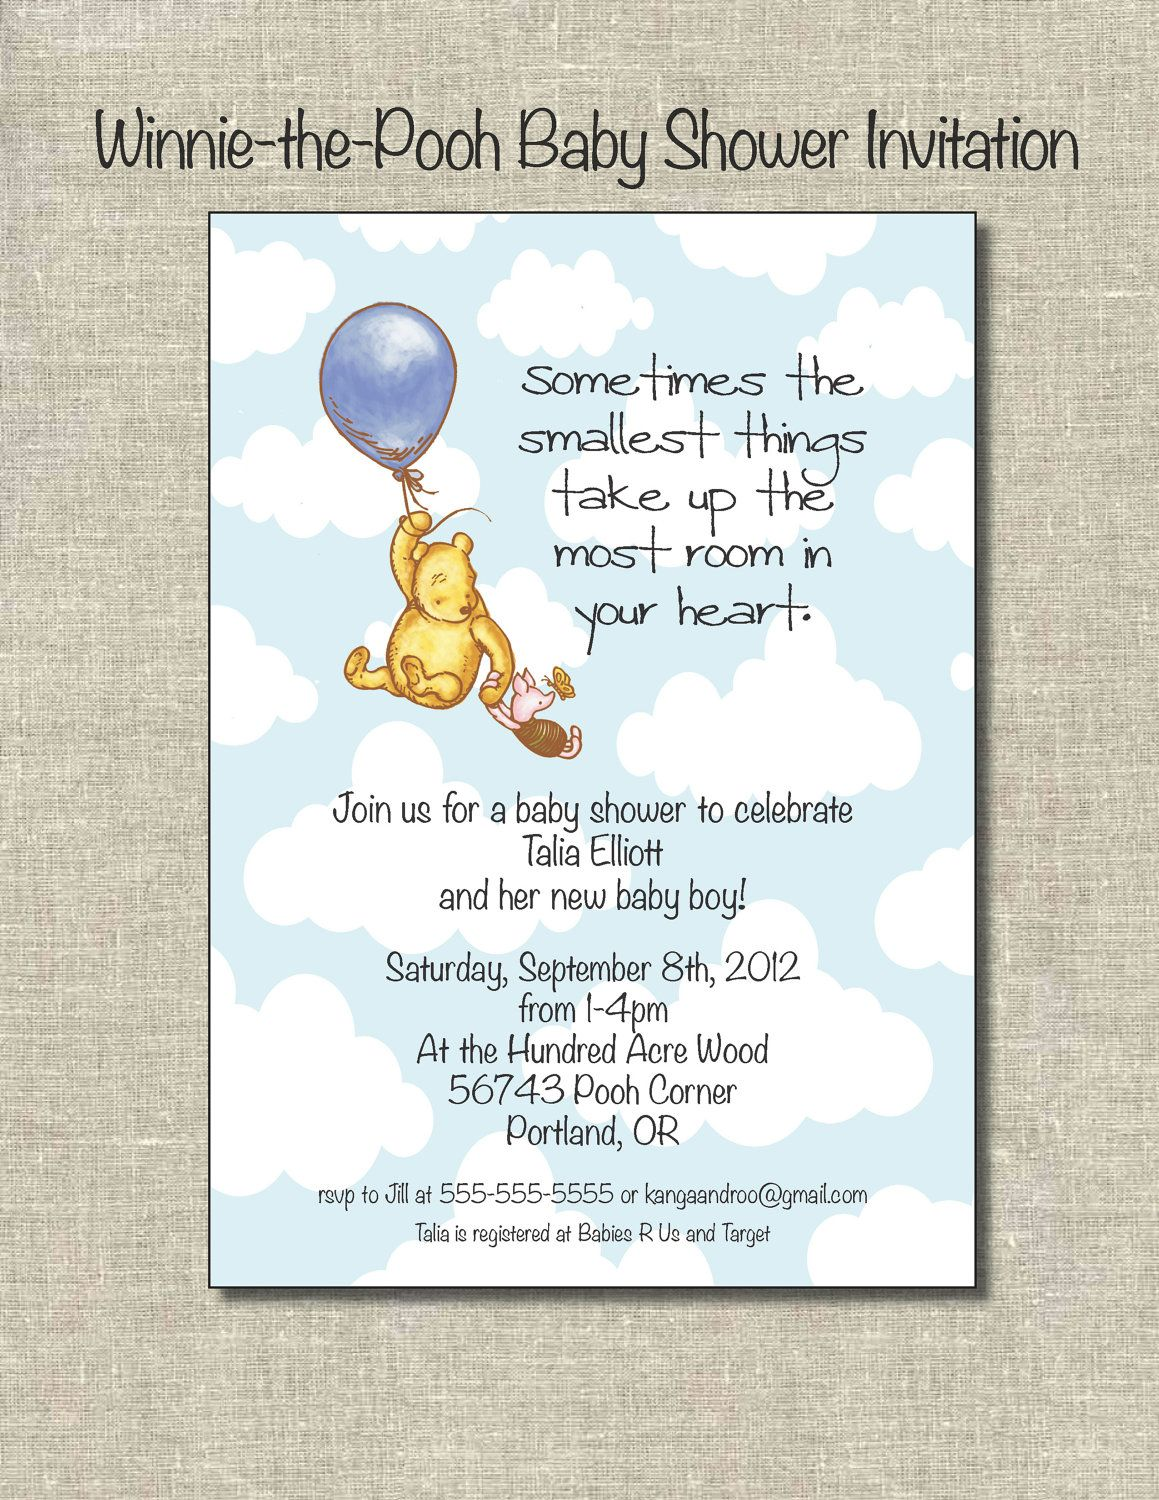 Winnie-the-Pooh Baby Shower Invitation/Digital File in 2018 | Will ...